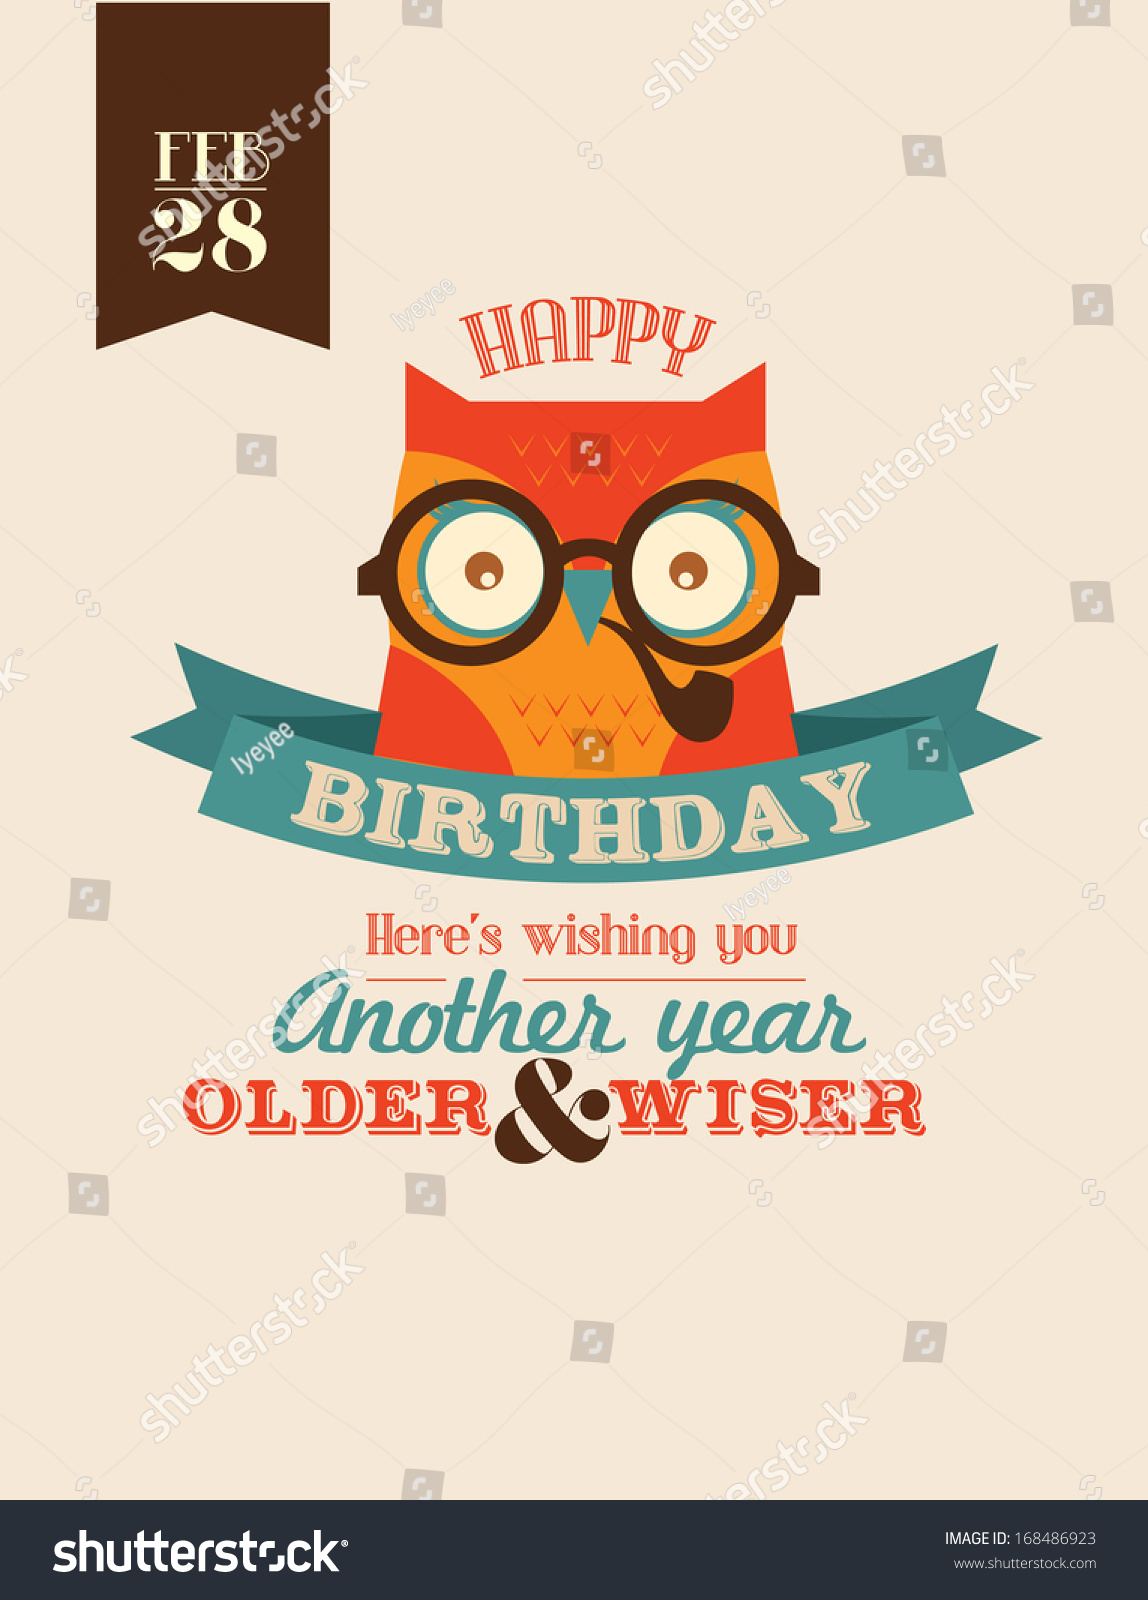 Wise Owl Birthday Greeting Template Vectorillustration Stock Vector